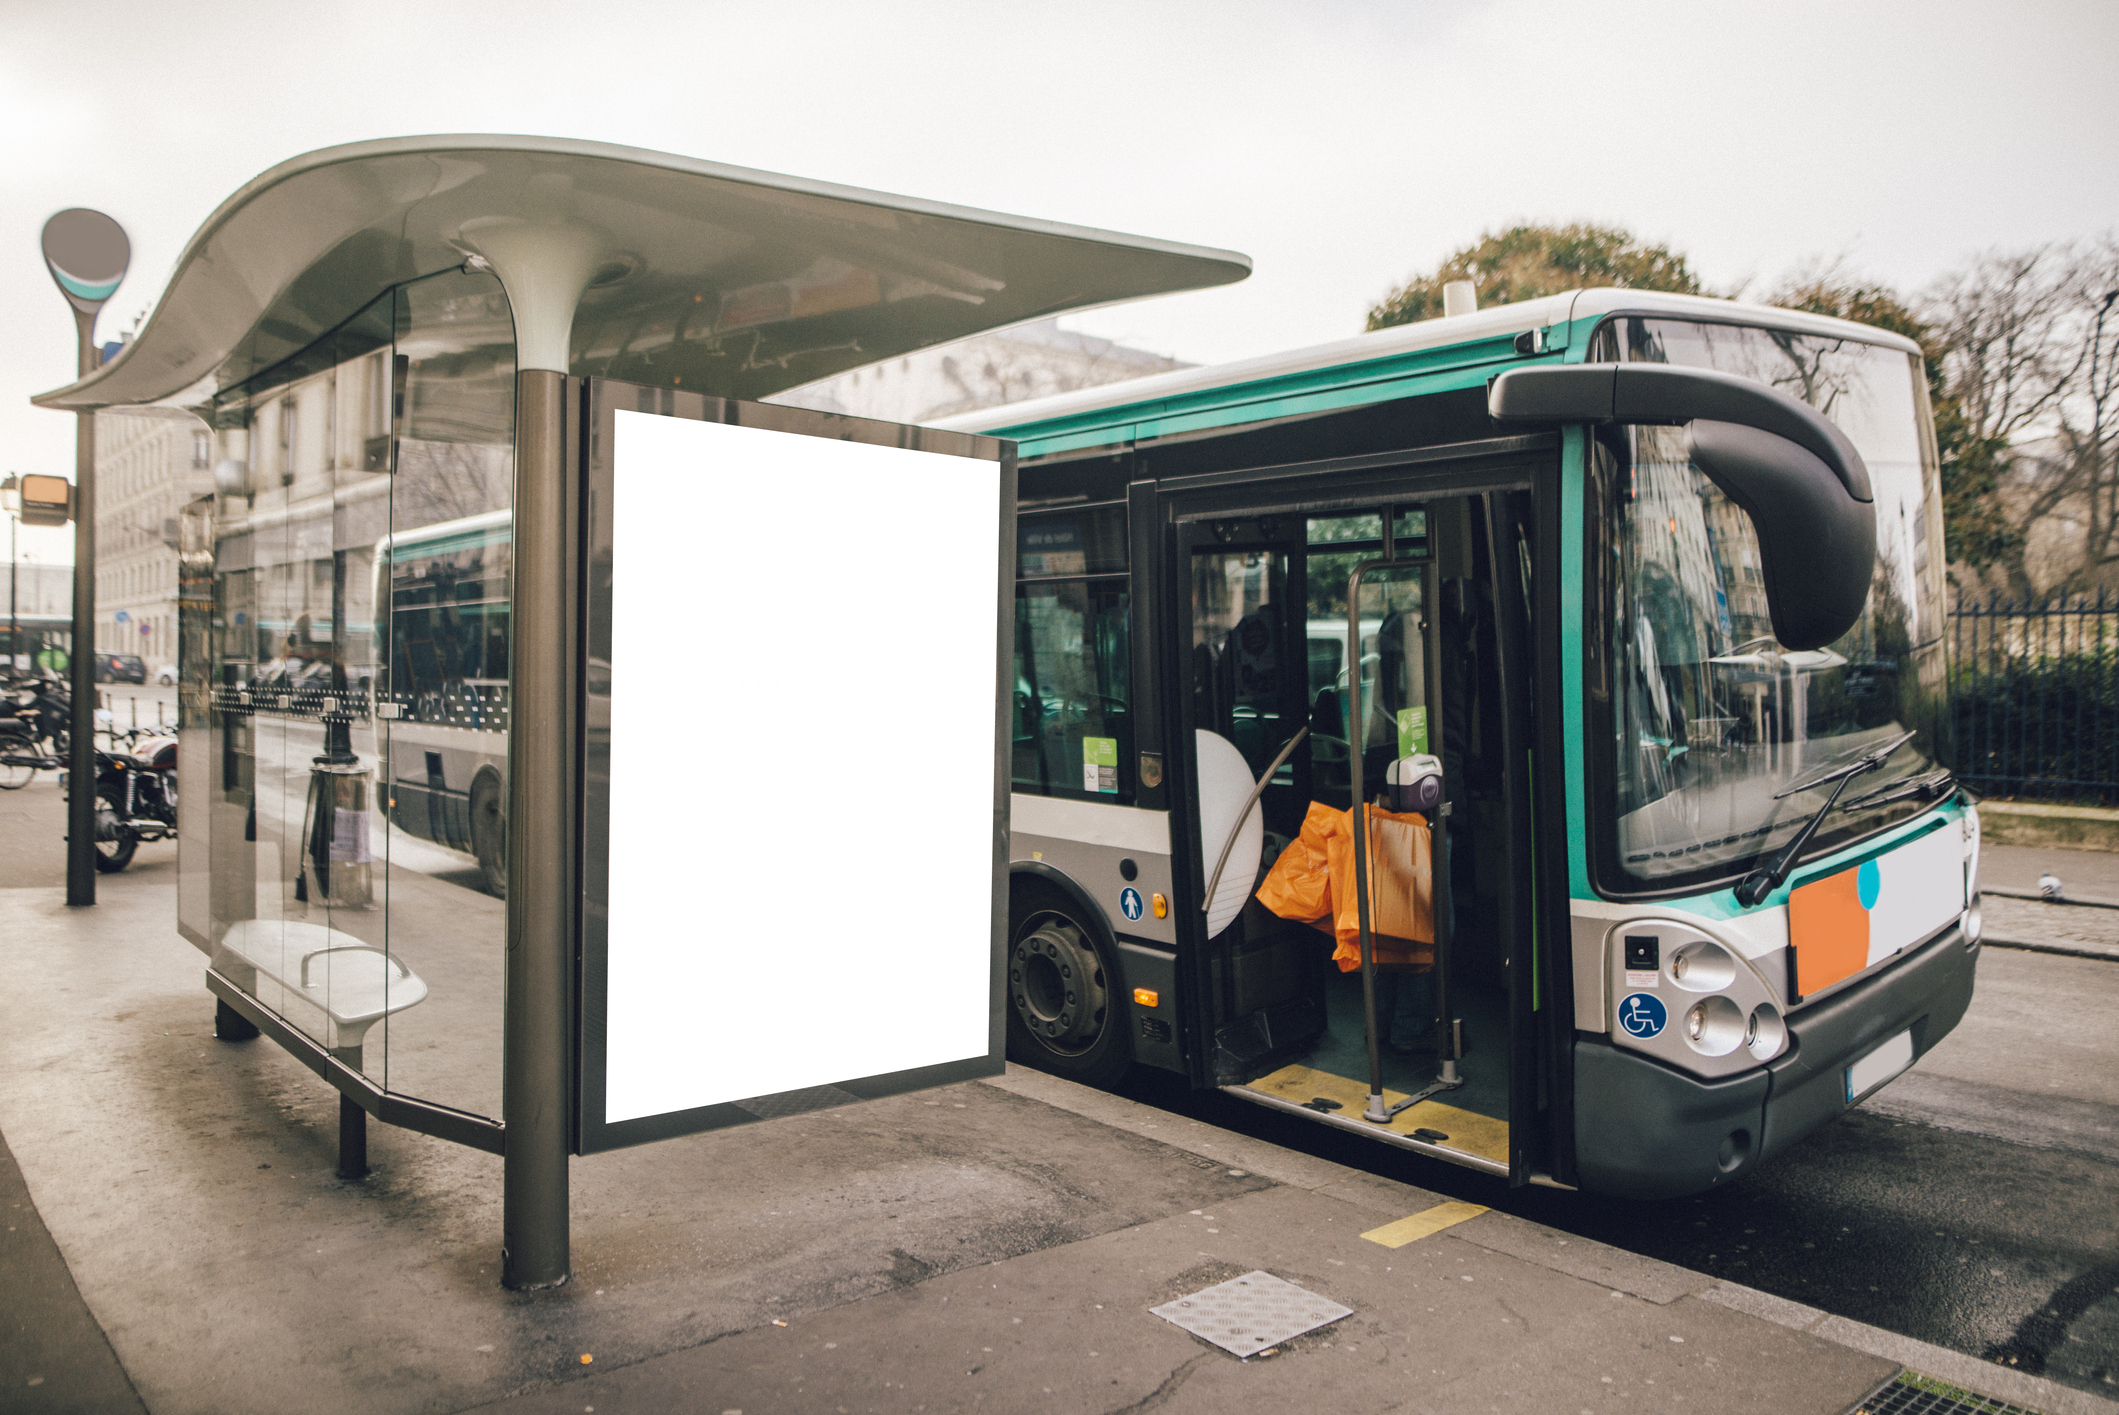 A bus stop with a blank billboard